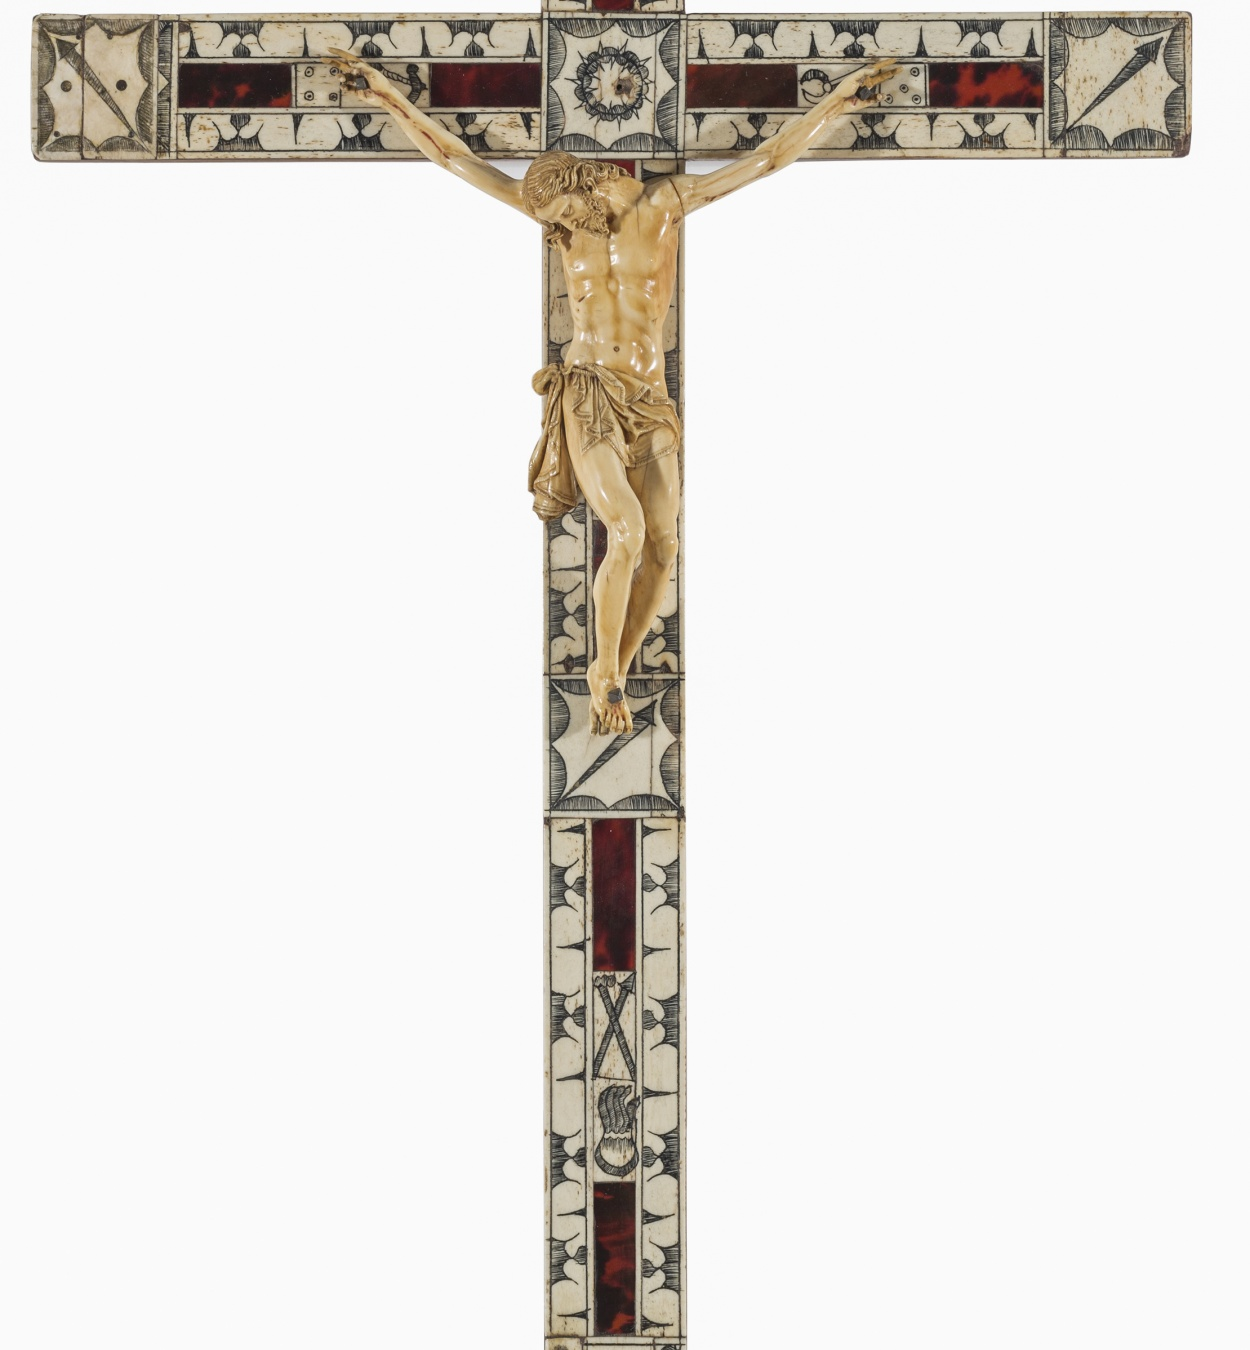 Anònim. Itàlia - Crucified Christ  - First quarter of the 17th century